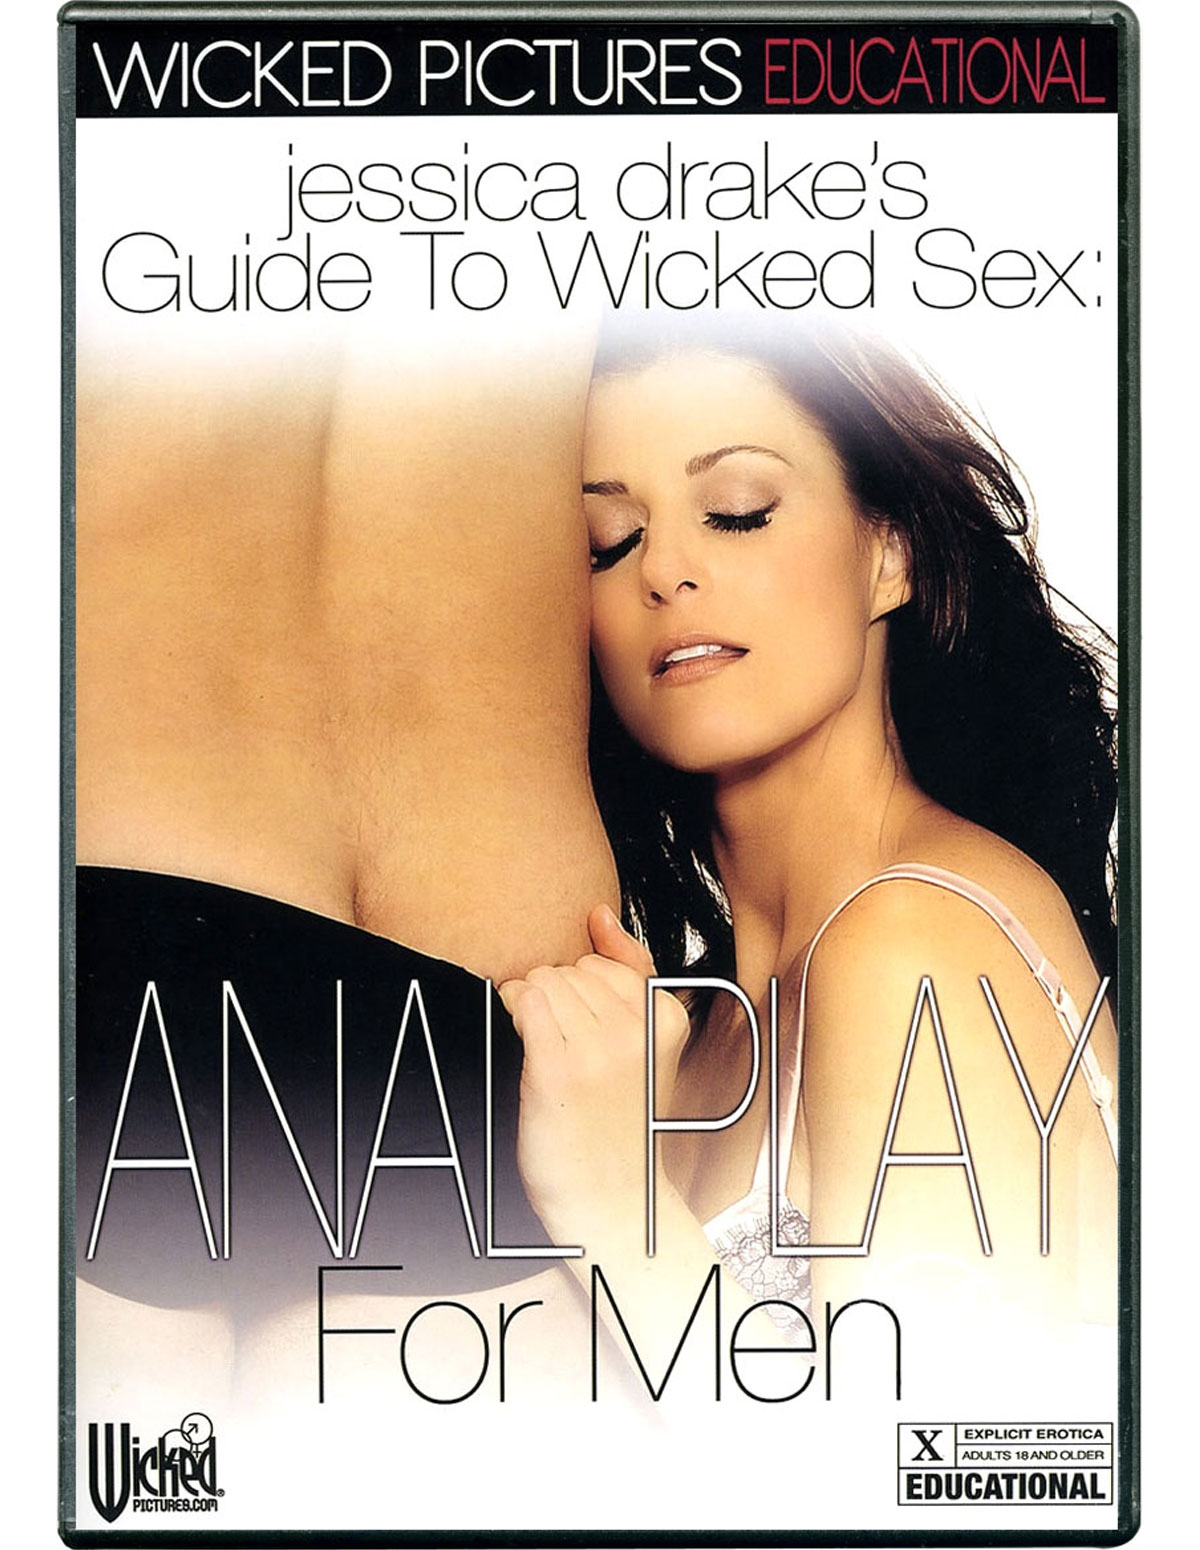 Anal Play For Men Dvd